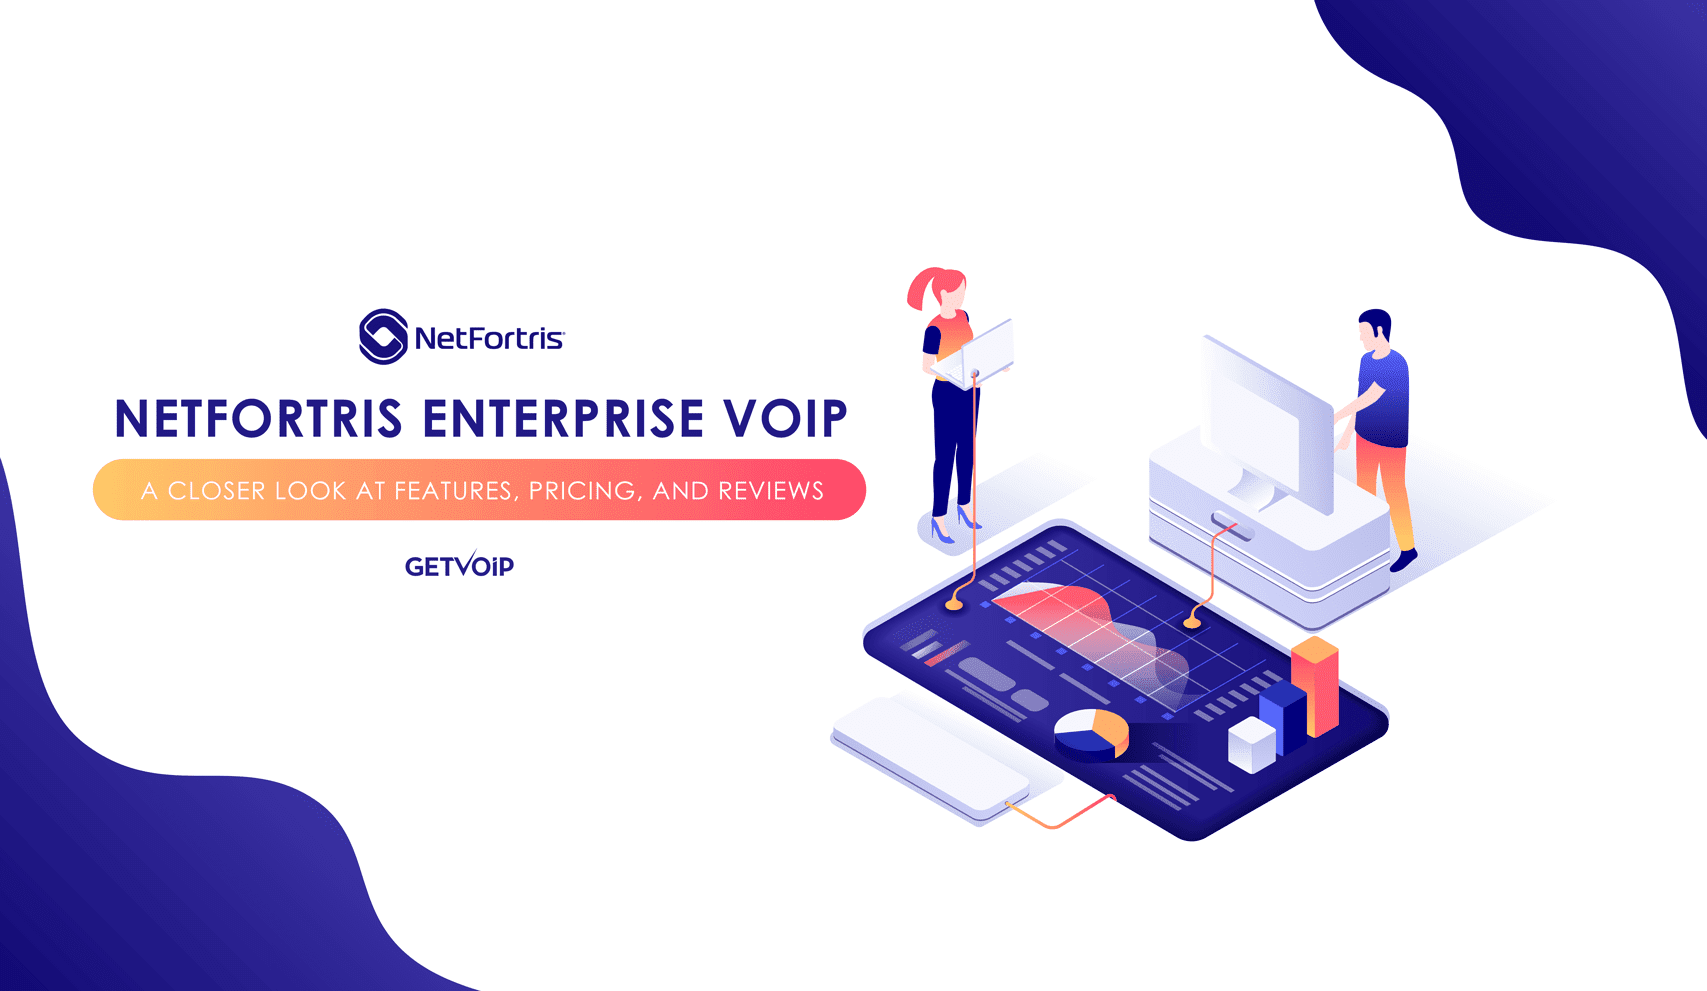 NetFortris Enterprise VoIP: A Closer Look at Features, Pricing, and Reviews